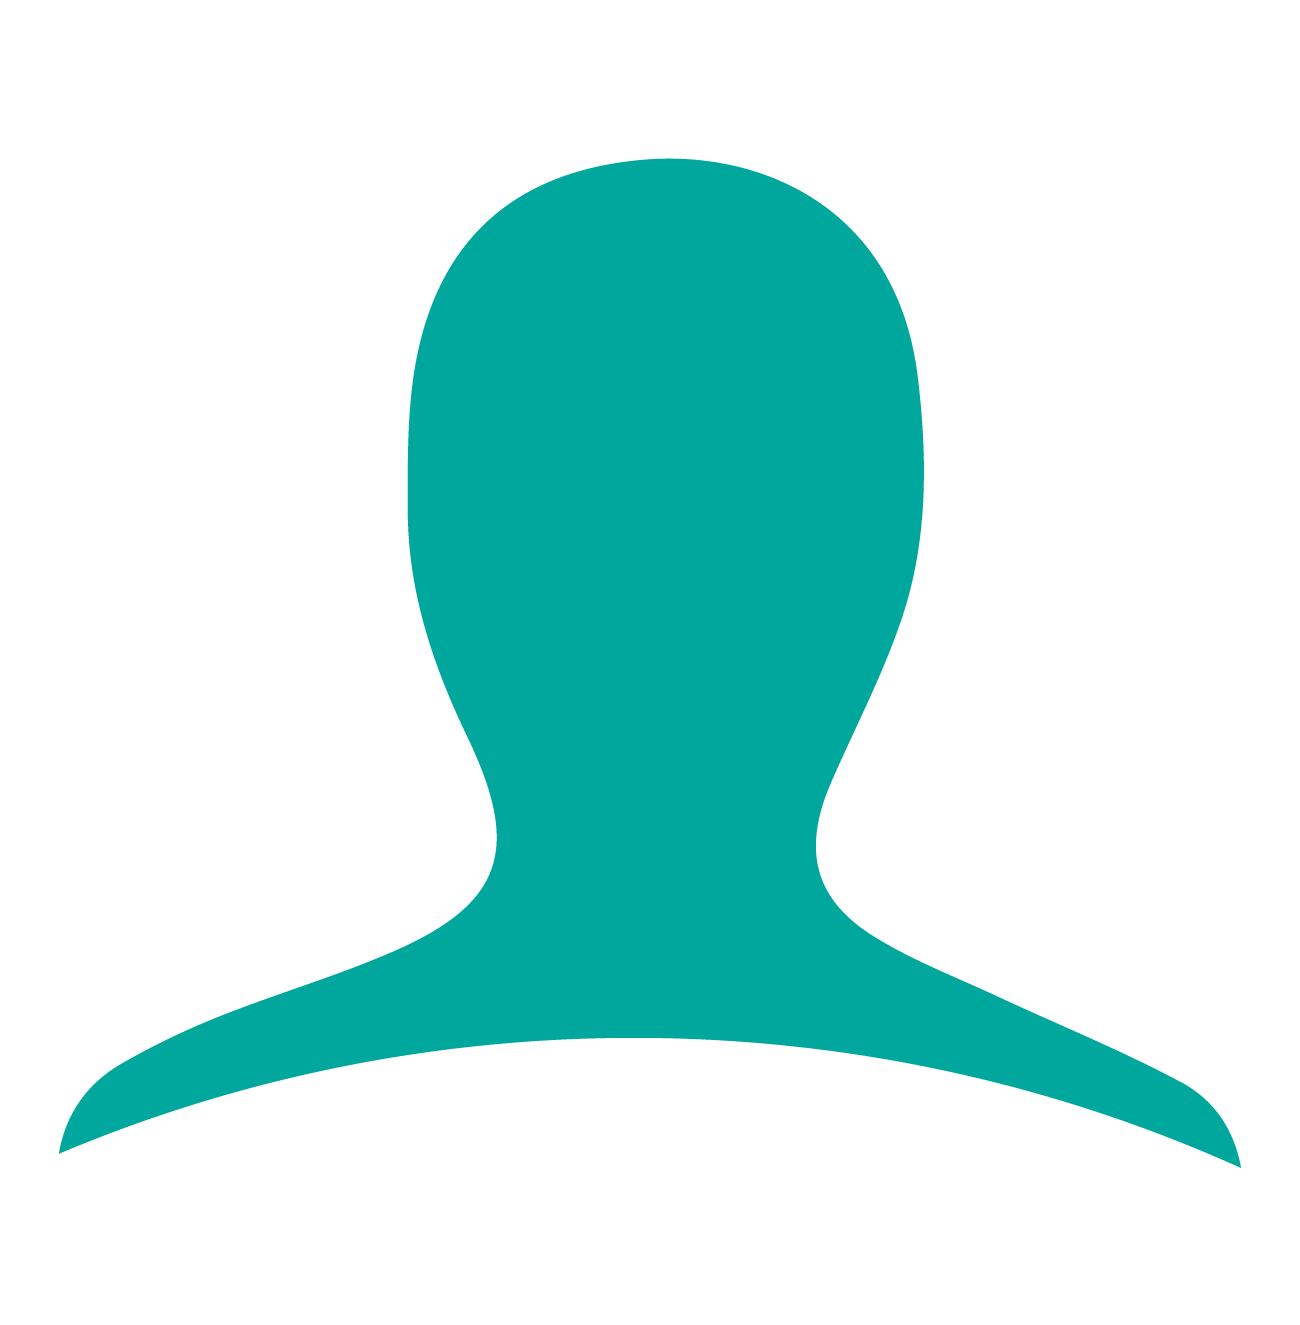 pac-logo-teal-silhouette.png